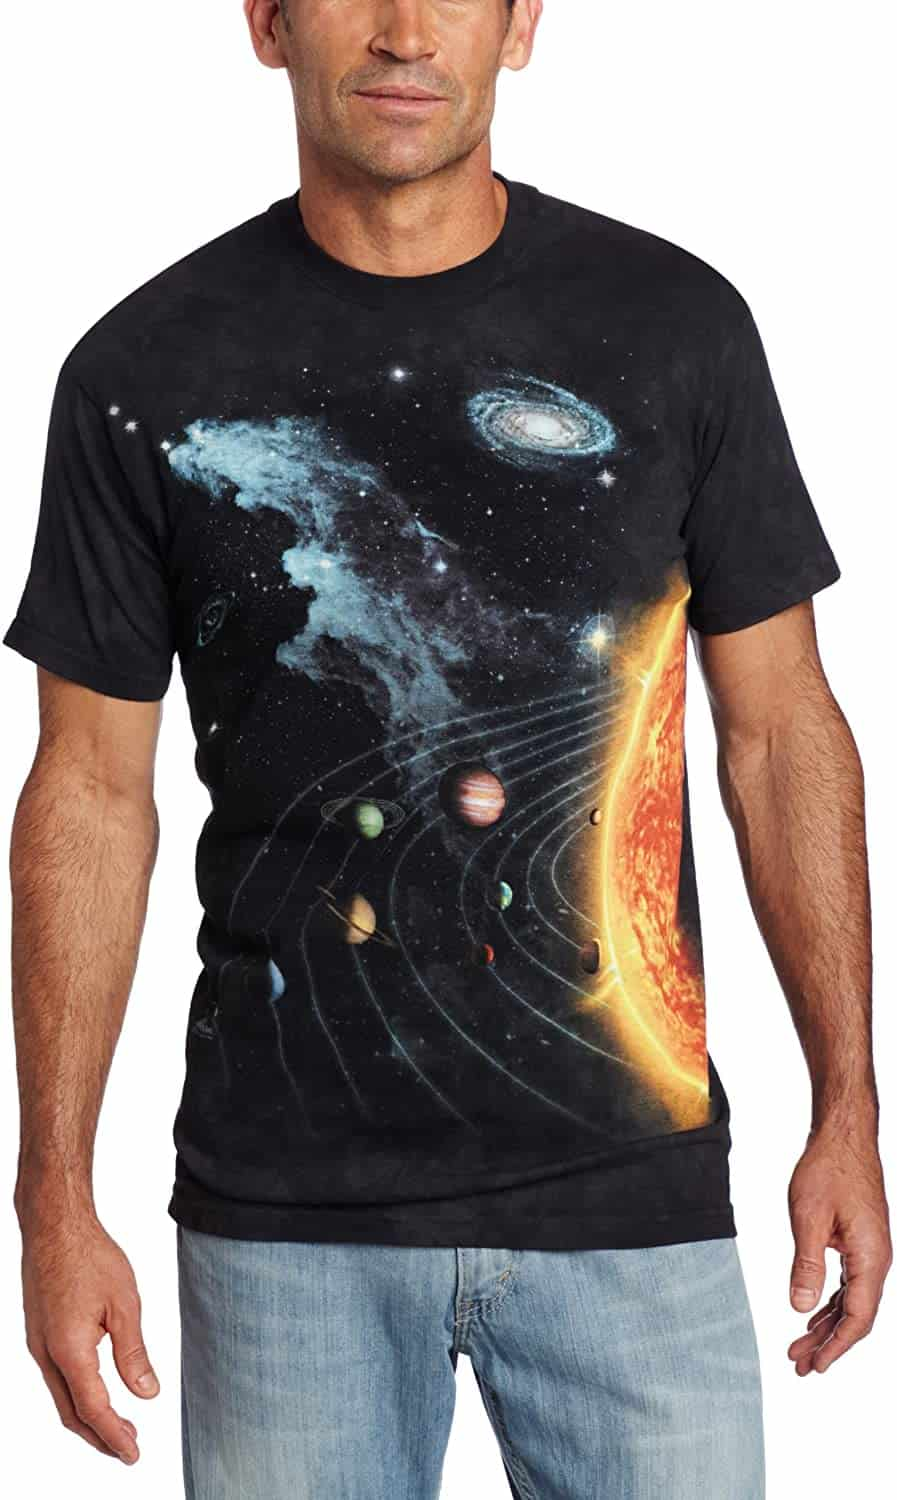 The Mountain-Solar System T-shirt